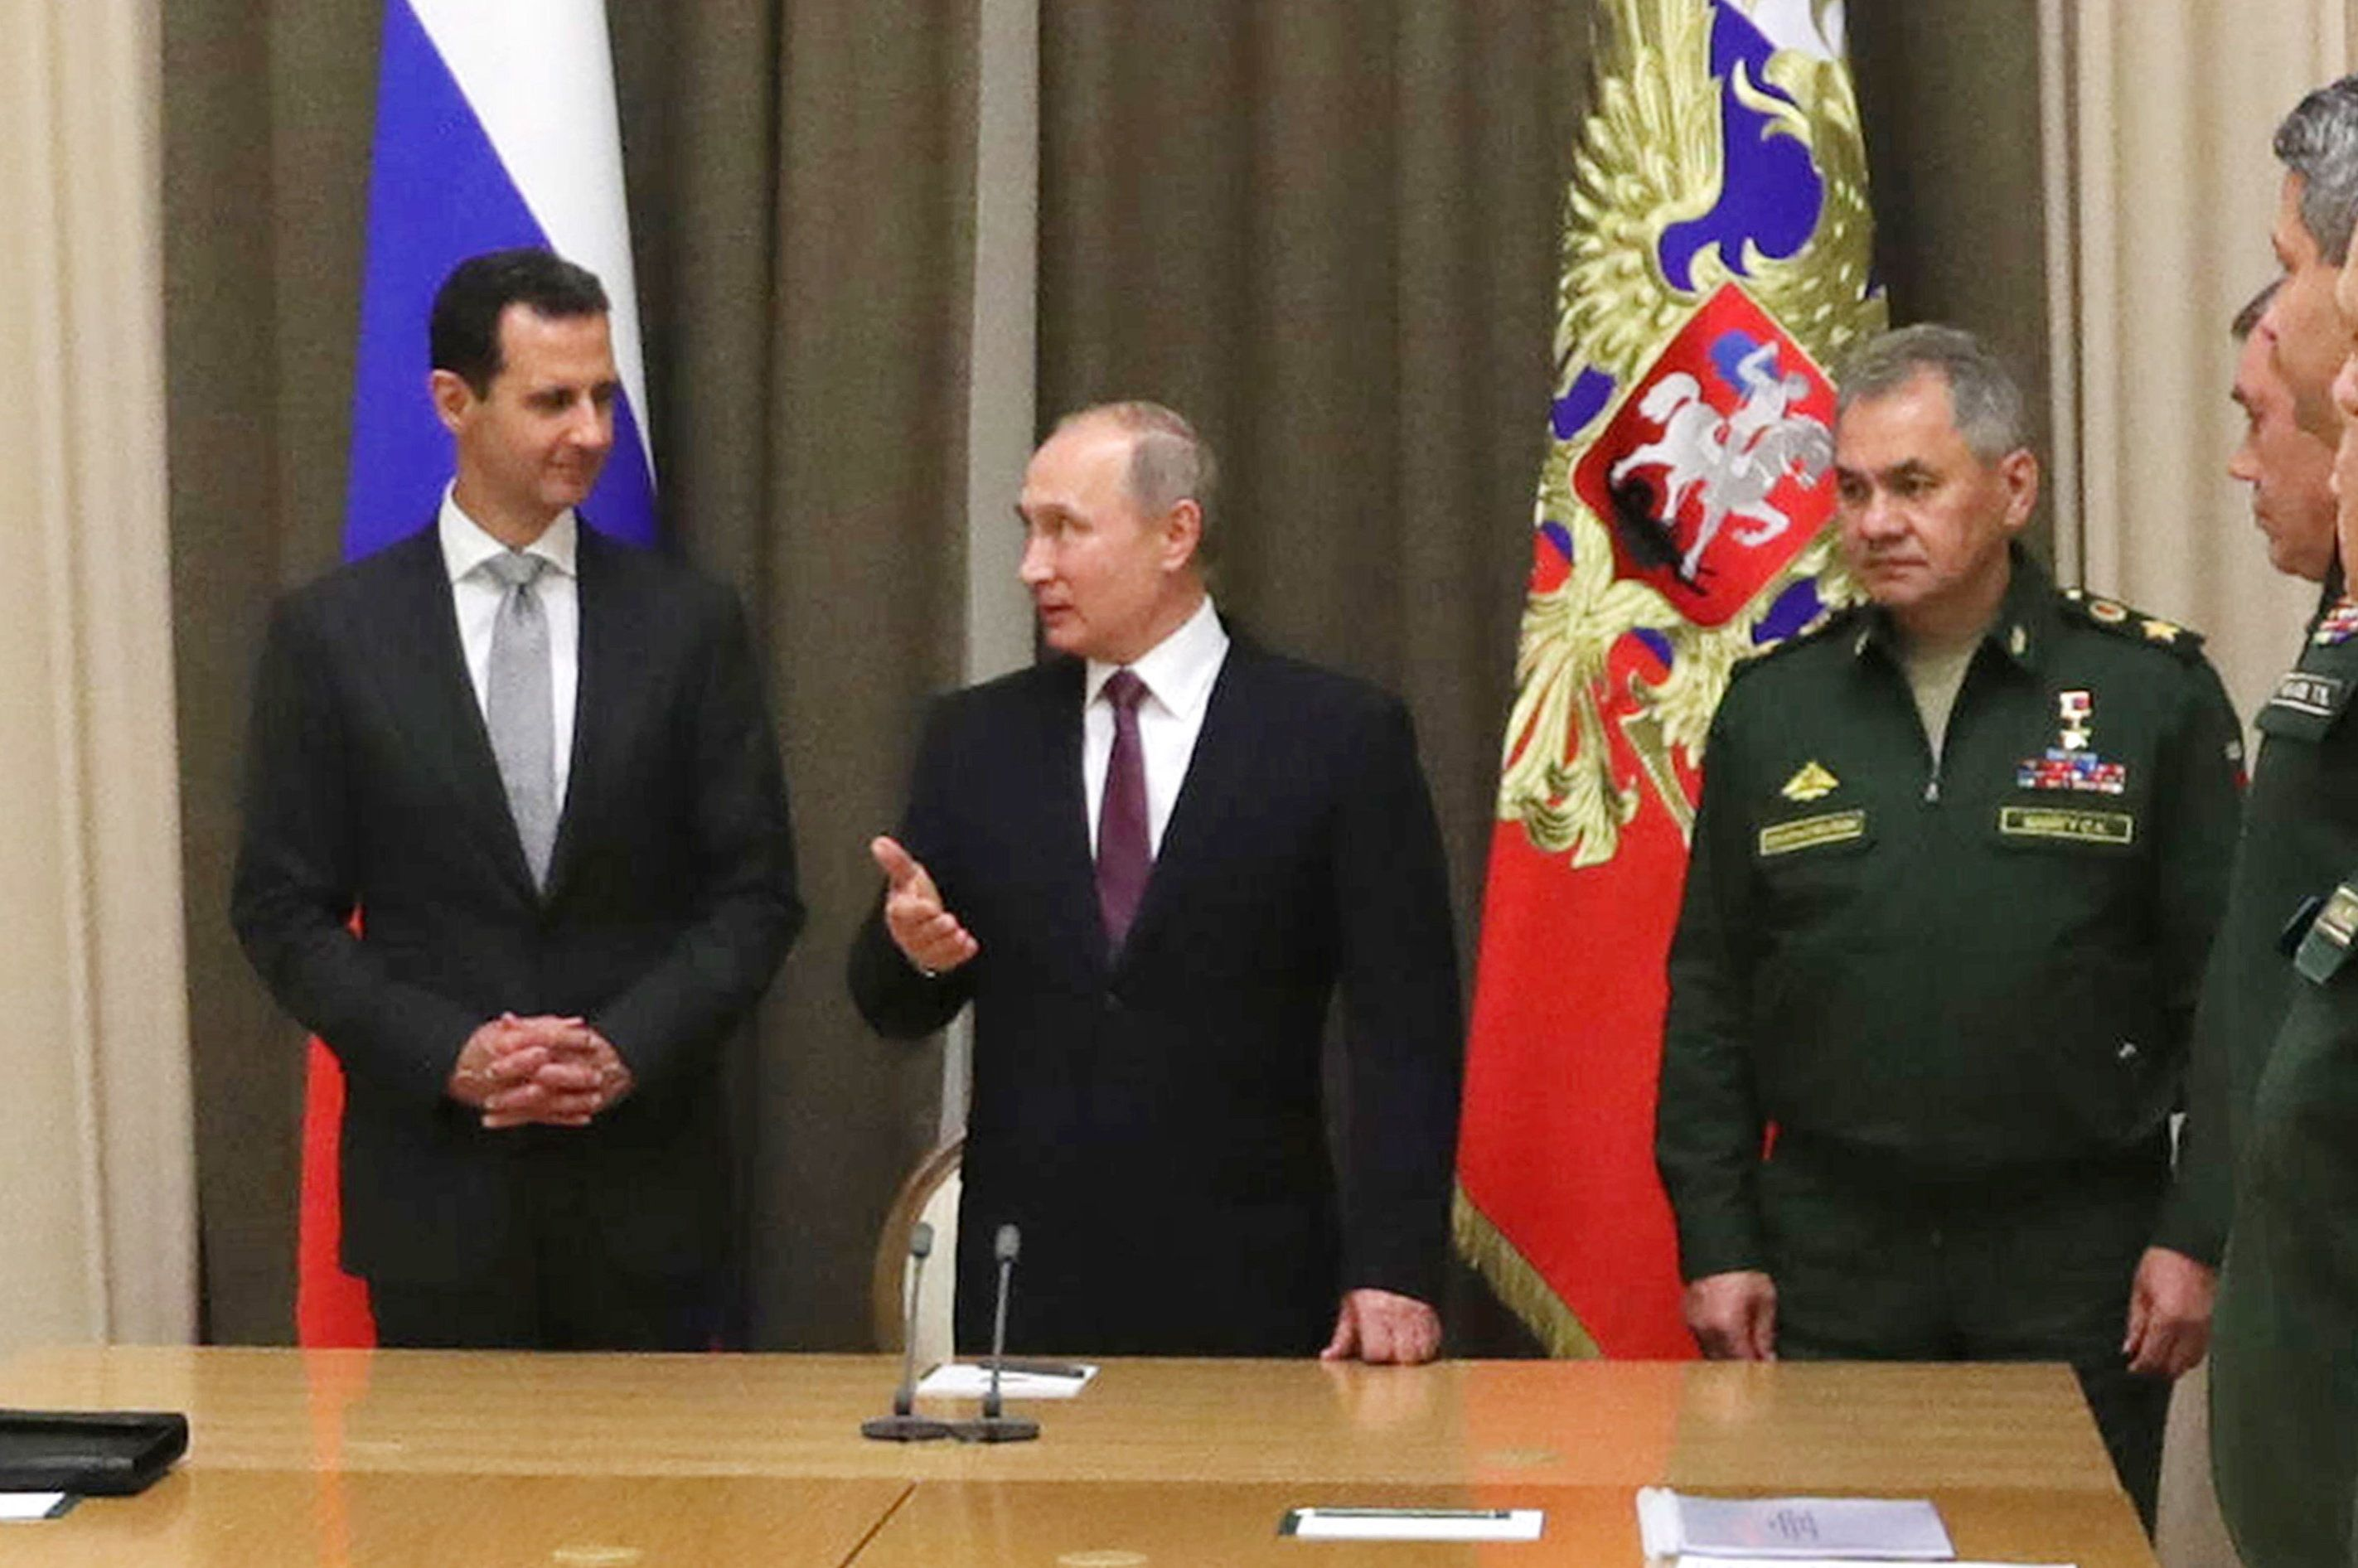 SOCHI, RUSSIA - NOVEMBER 21, 2017: Syria's President Bashar al-Assad, Russia's President Vladimir Putin, and Russia's Defence Minister Sergei Shoigu (L-R) during a meeting at Bocharov Ruchei residence. Mikhail Klimentyev/Russian Presidential Press and Information Office/TASS (Photo by Mikhail Klimentyev\TASS via Getty Images)